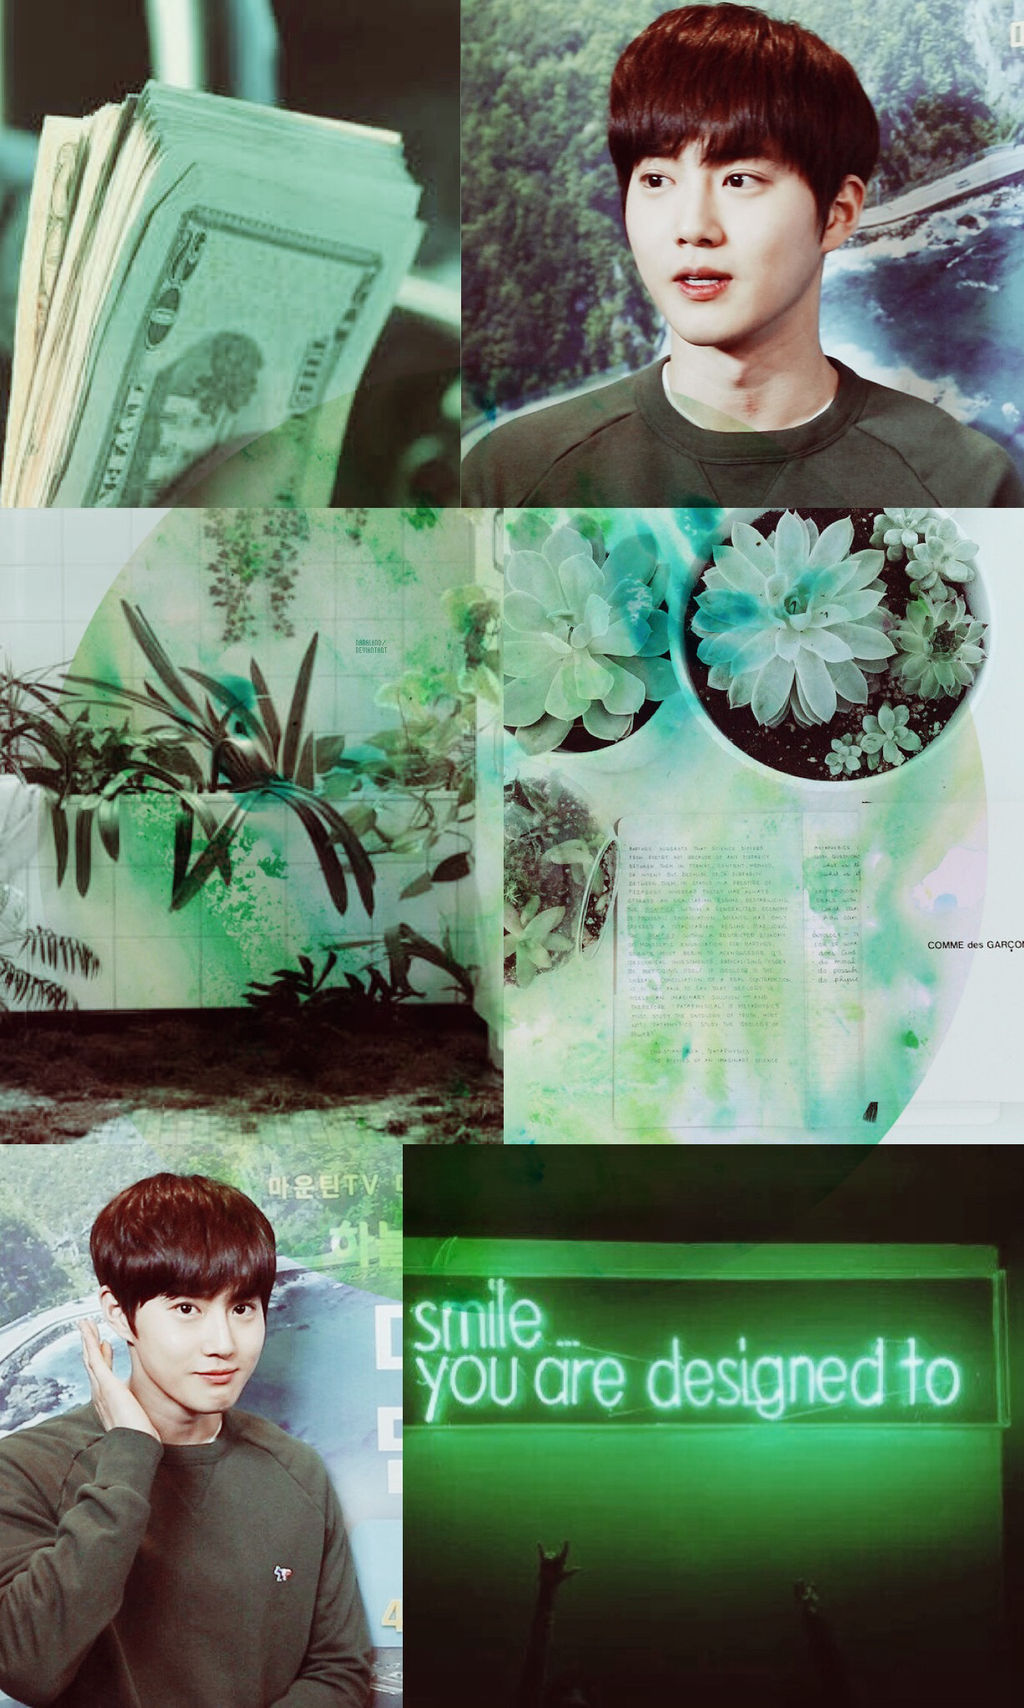 exo suho aesthetic wallpaper by nanaland dba7aak